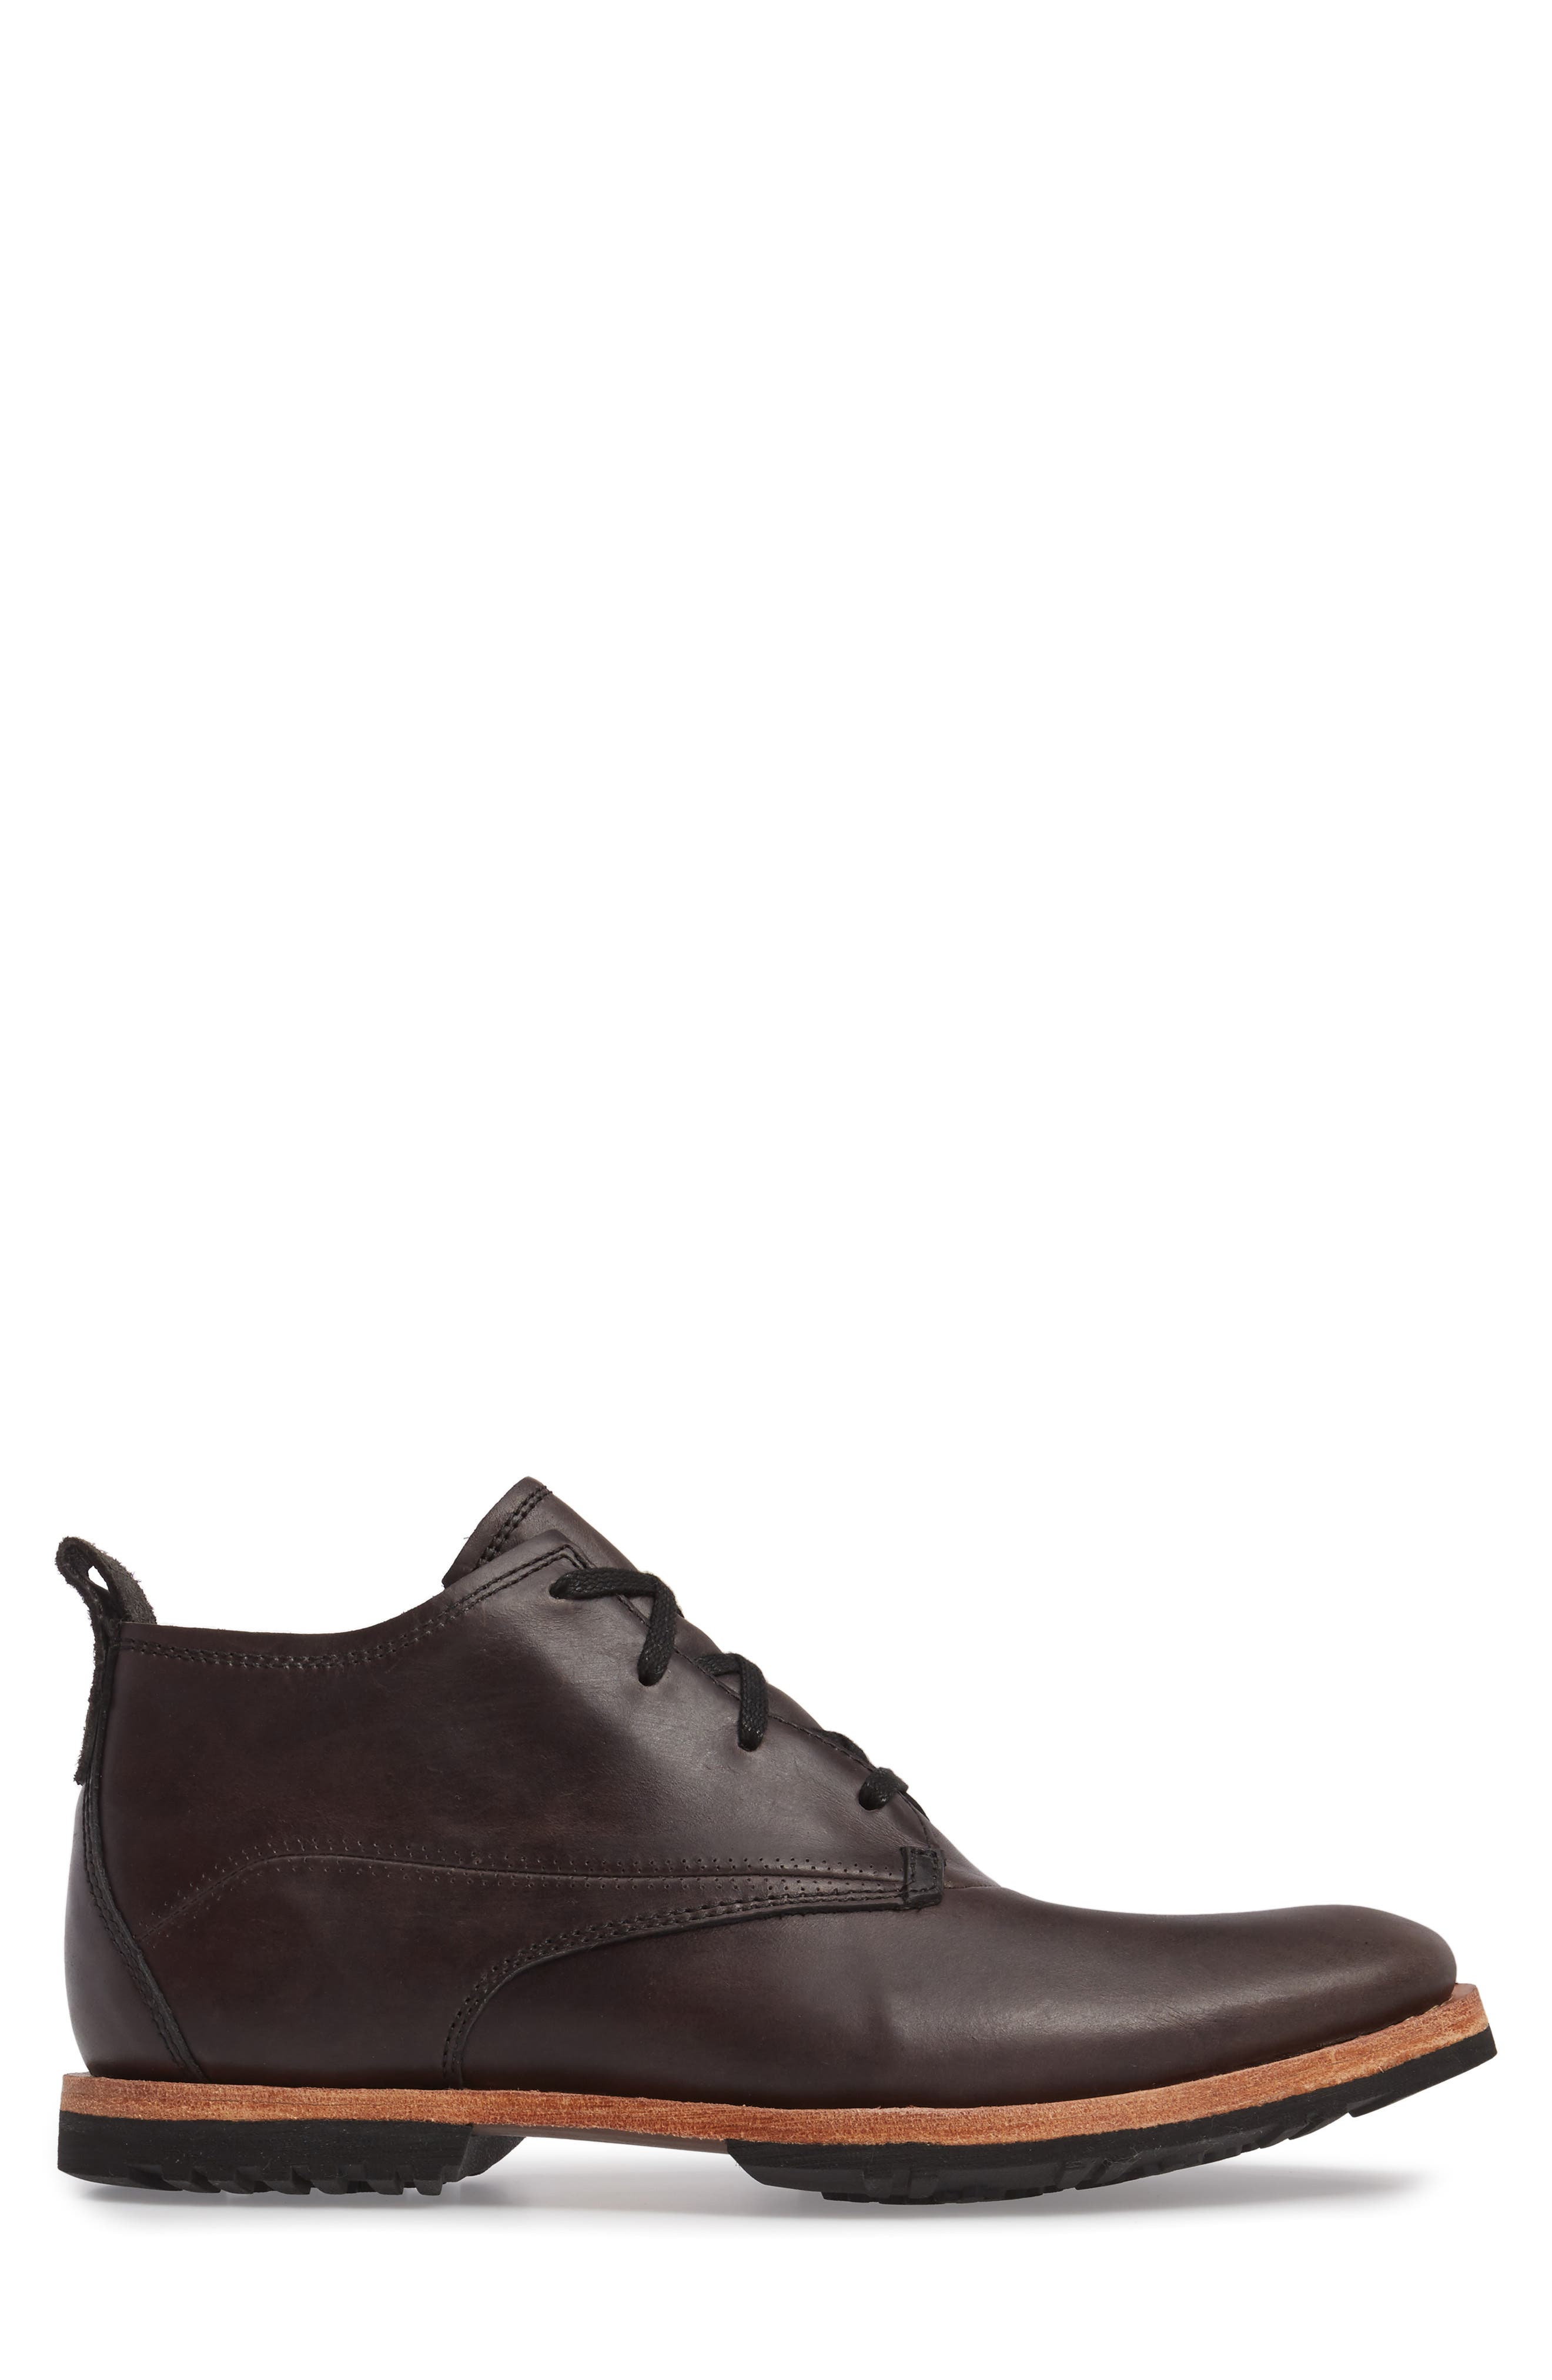 'Bardstown' Chukka Boot,                             Alternate thumbnail 3, color,                             002